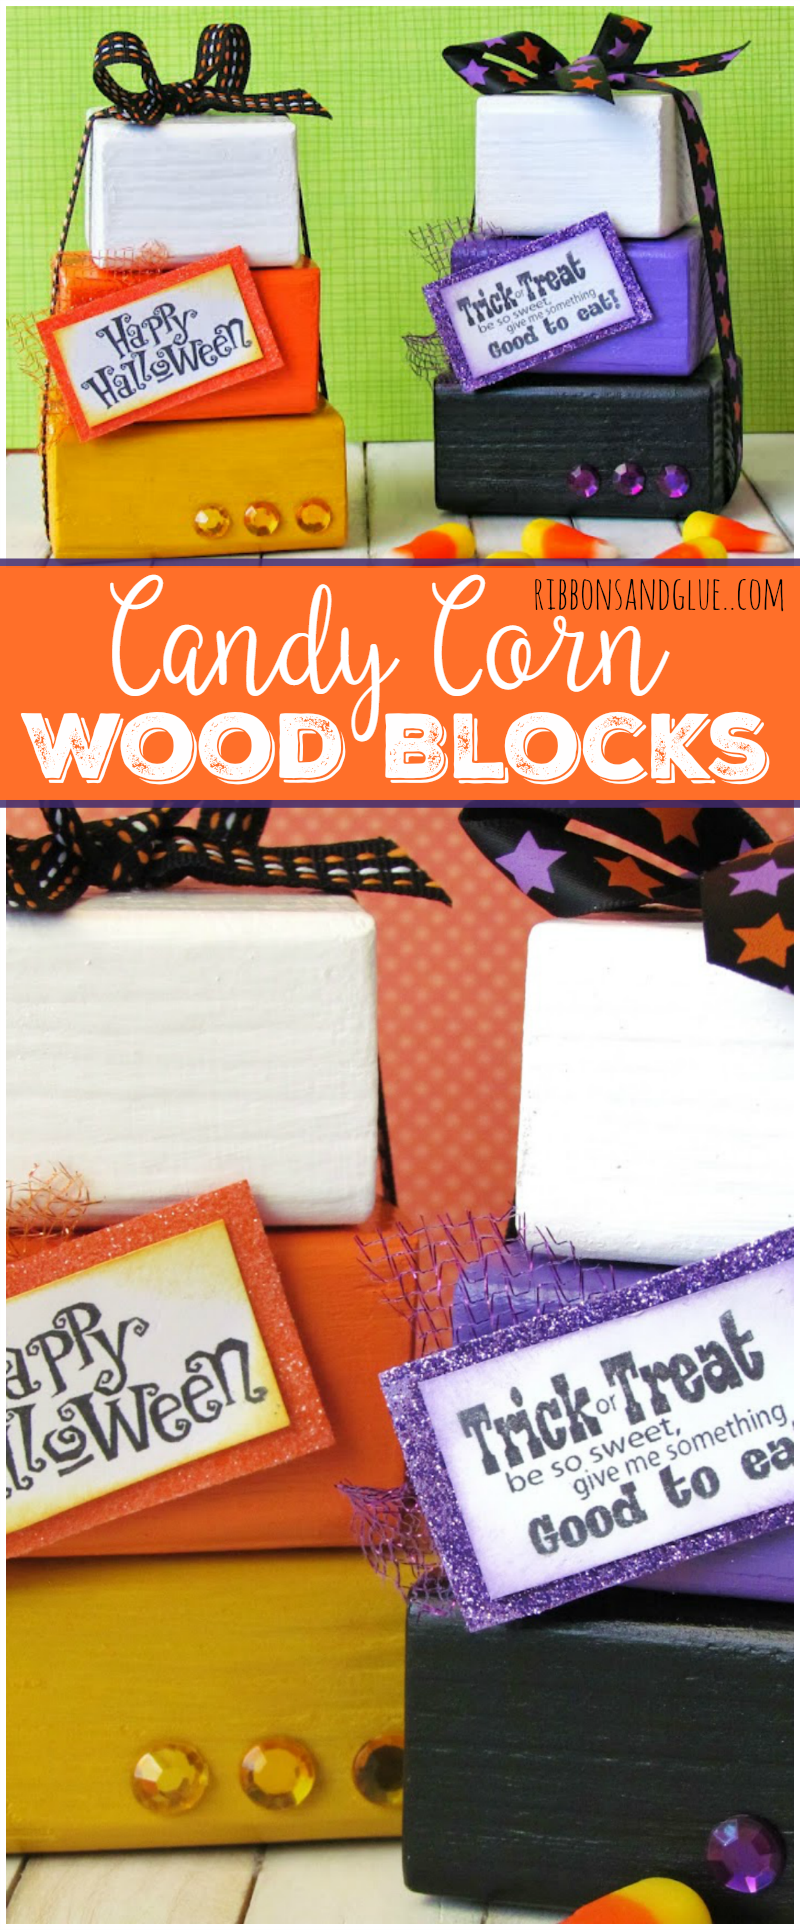 Candy Corn Wood Blocks are an easy craft to make for any Halloween candy lover. All you need is stacking wood blocks, paint and hot glue.